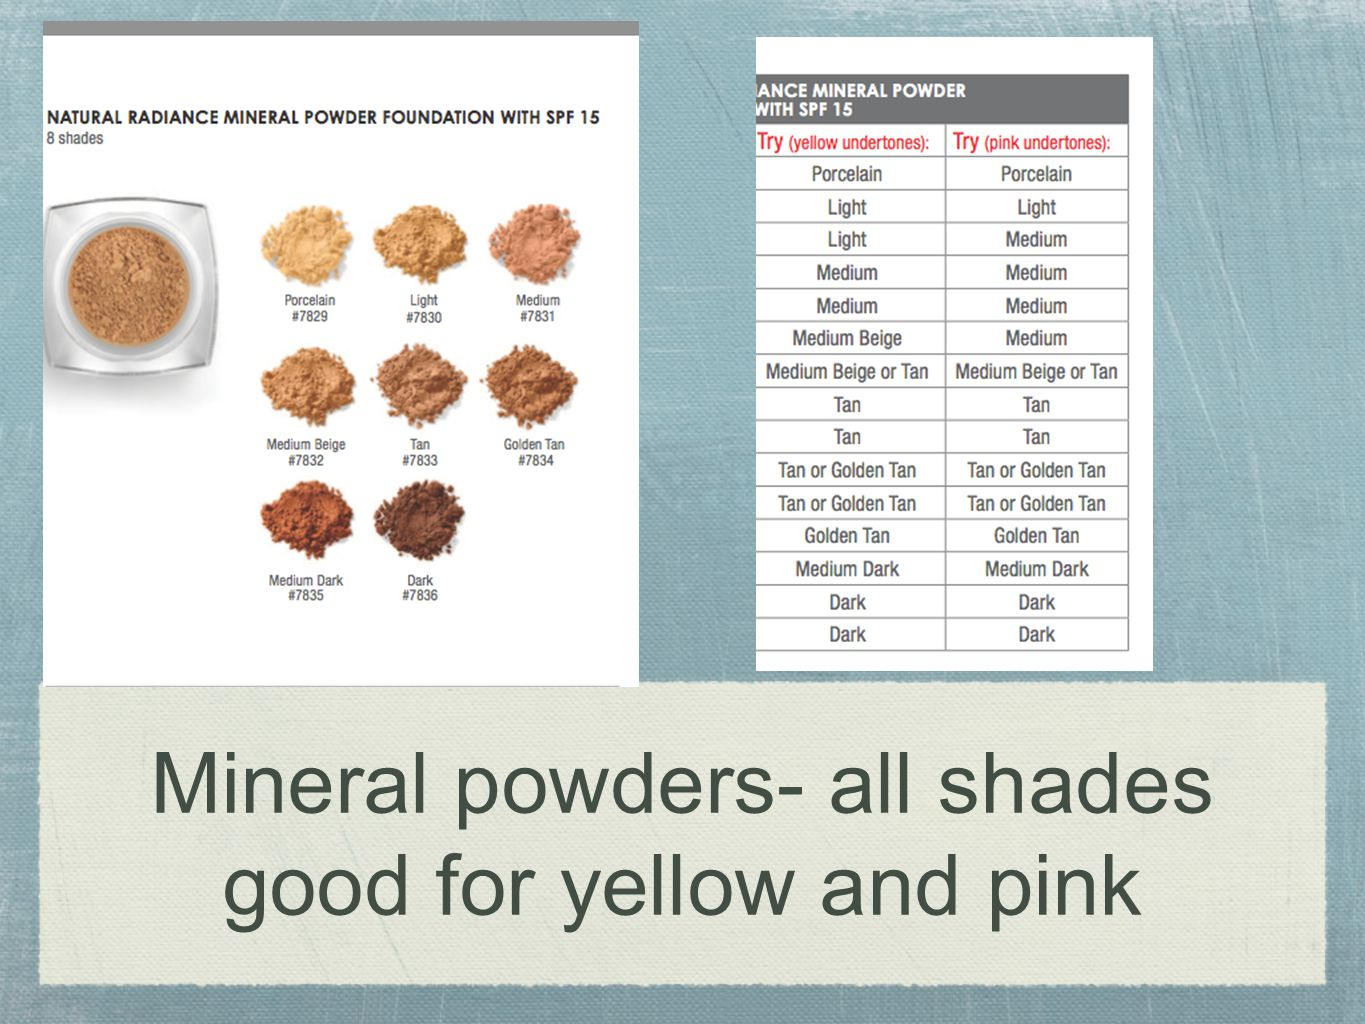 Mineral powders- all shades good for yellow and pink